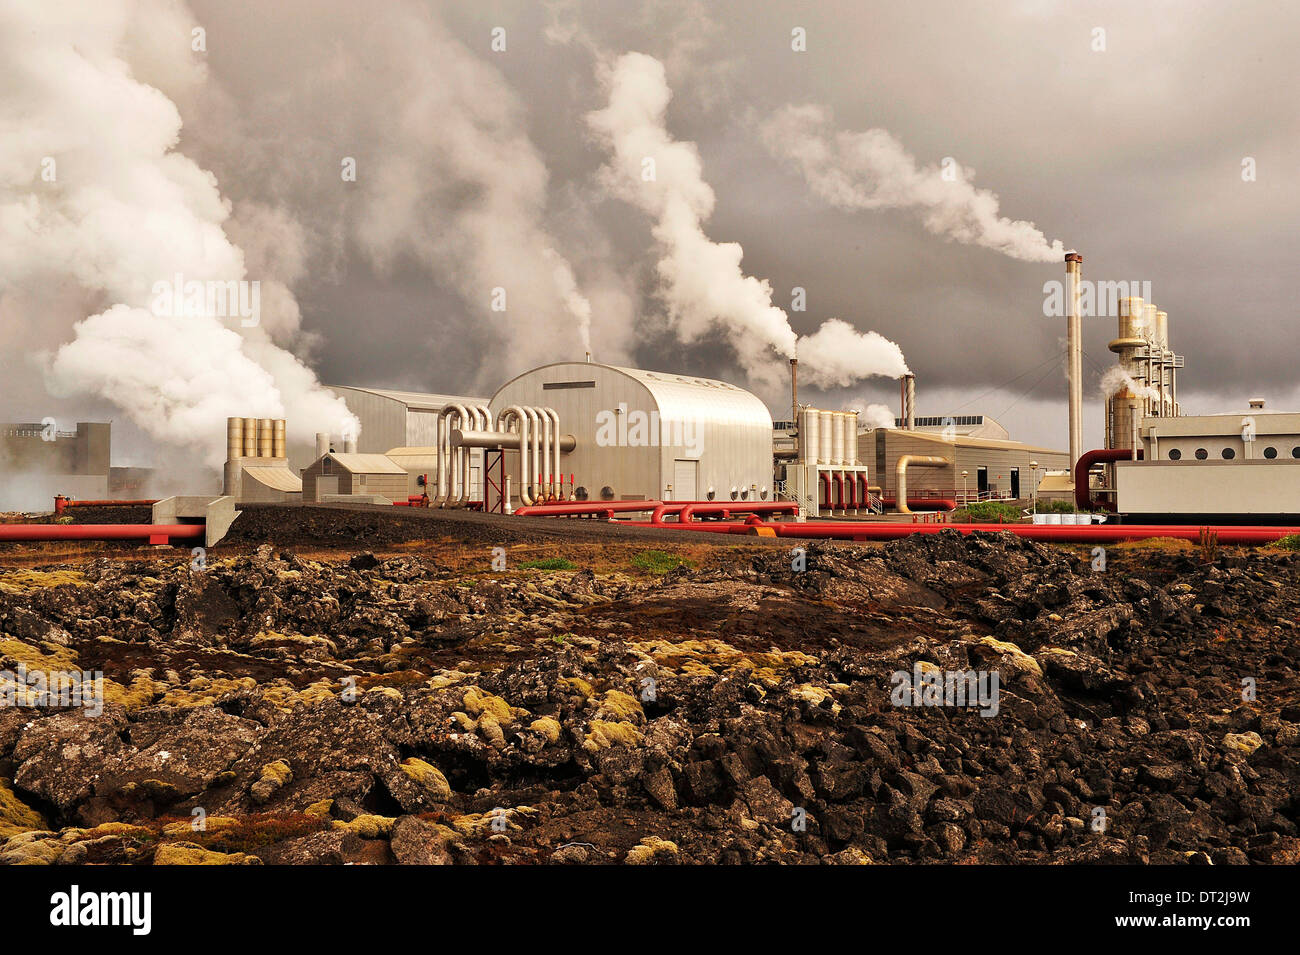 Iceland, Blue Lagoon Area, Geothermic Factories - Stock Image